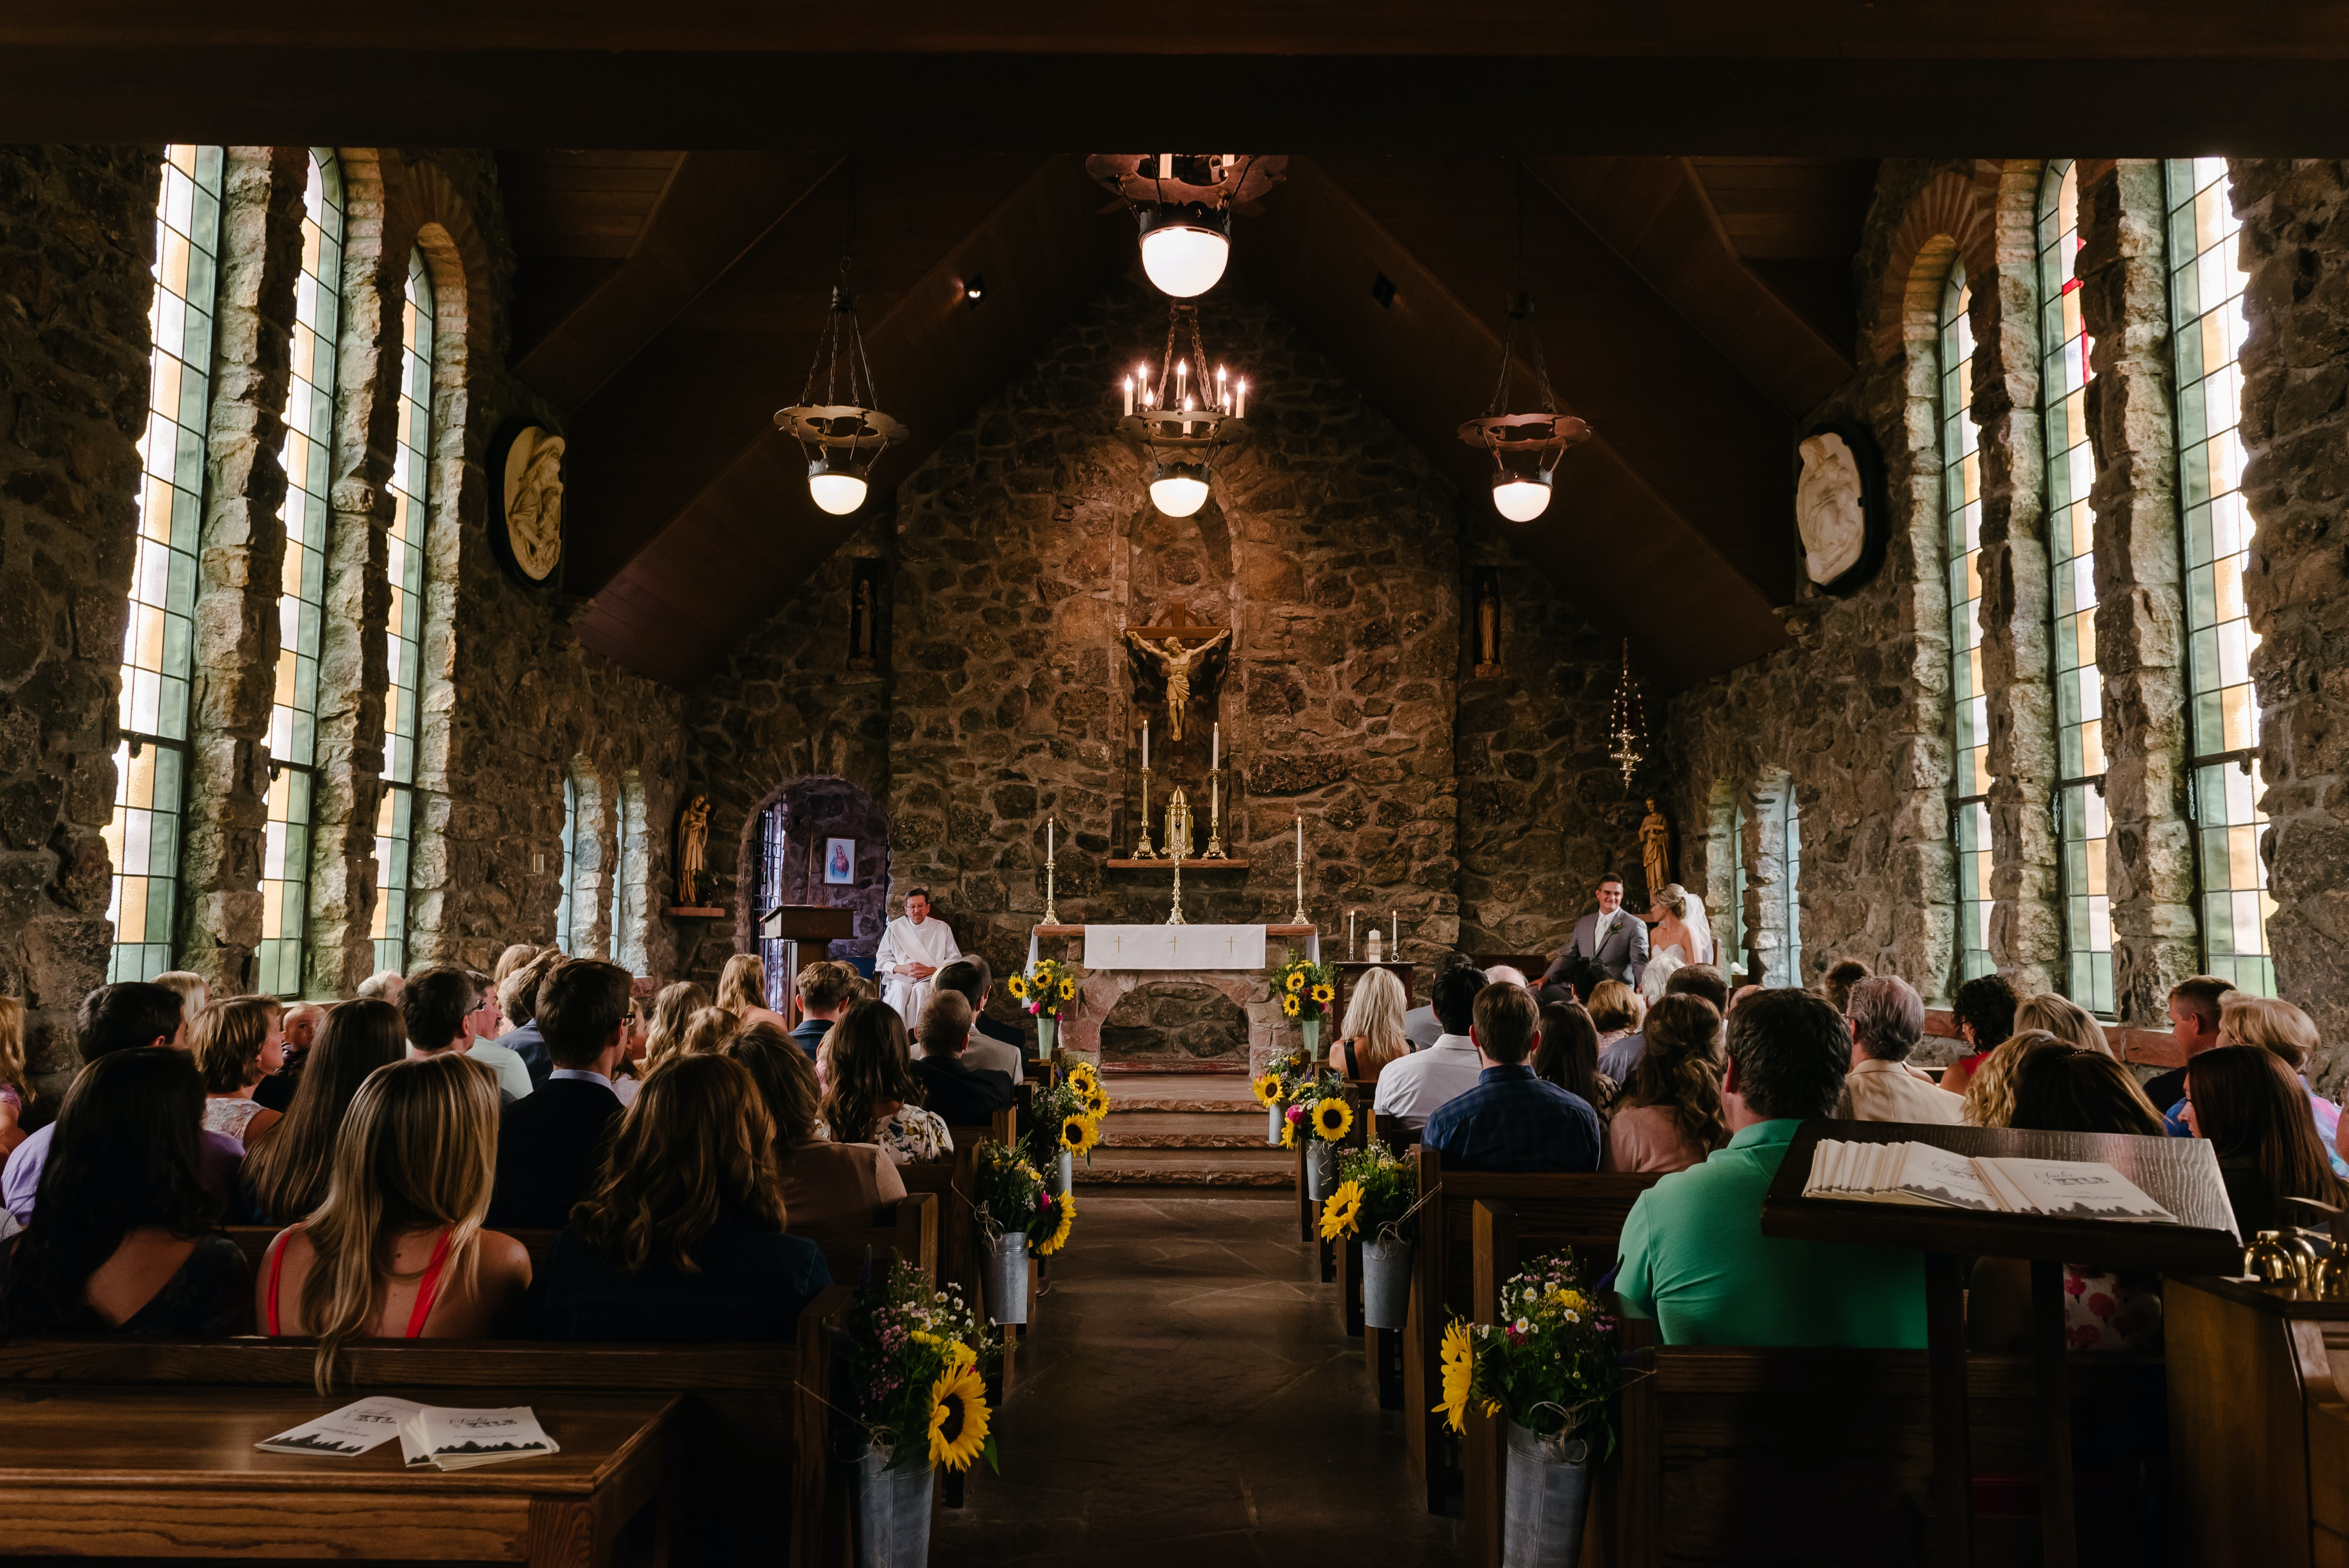 Looking up the aisle of a church wedding with guests sitting in the chapel